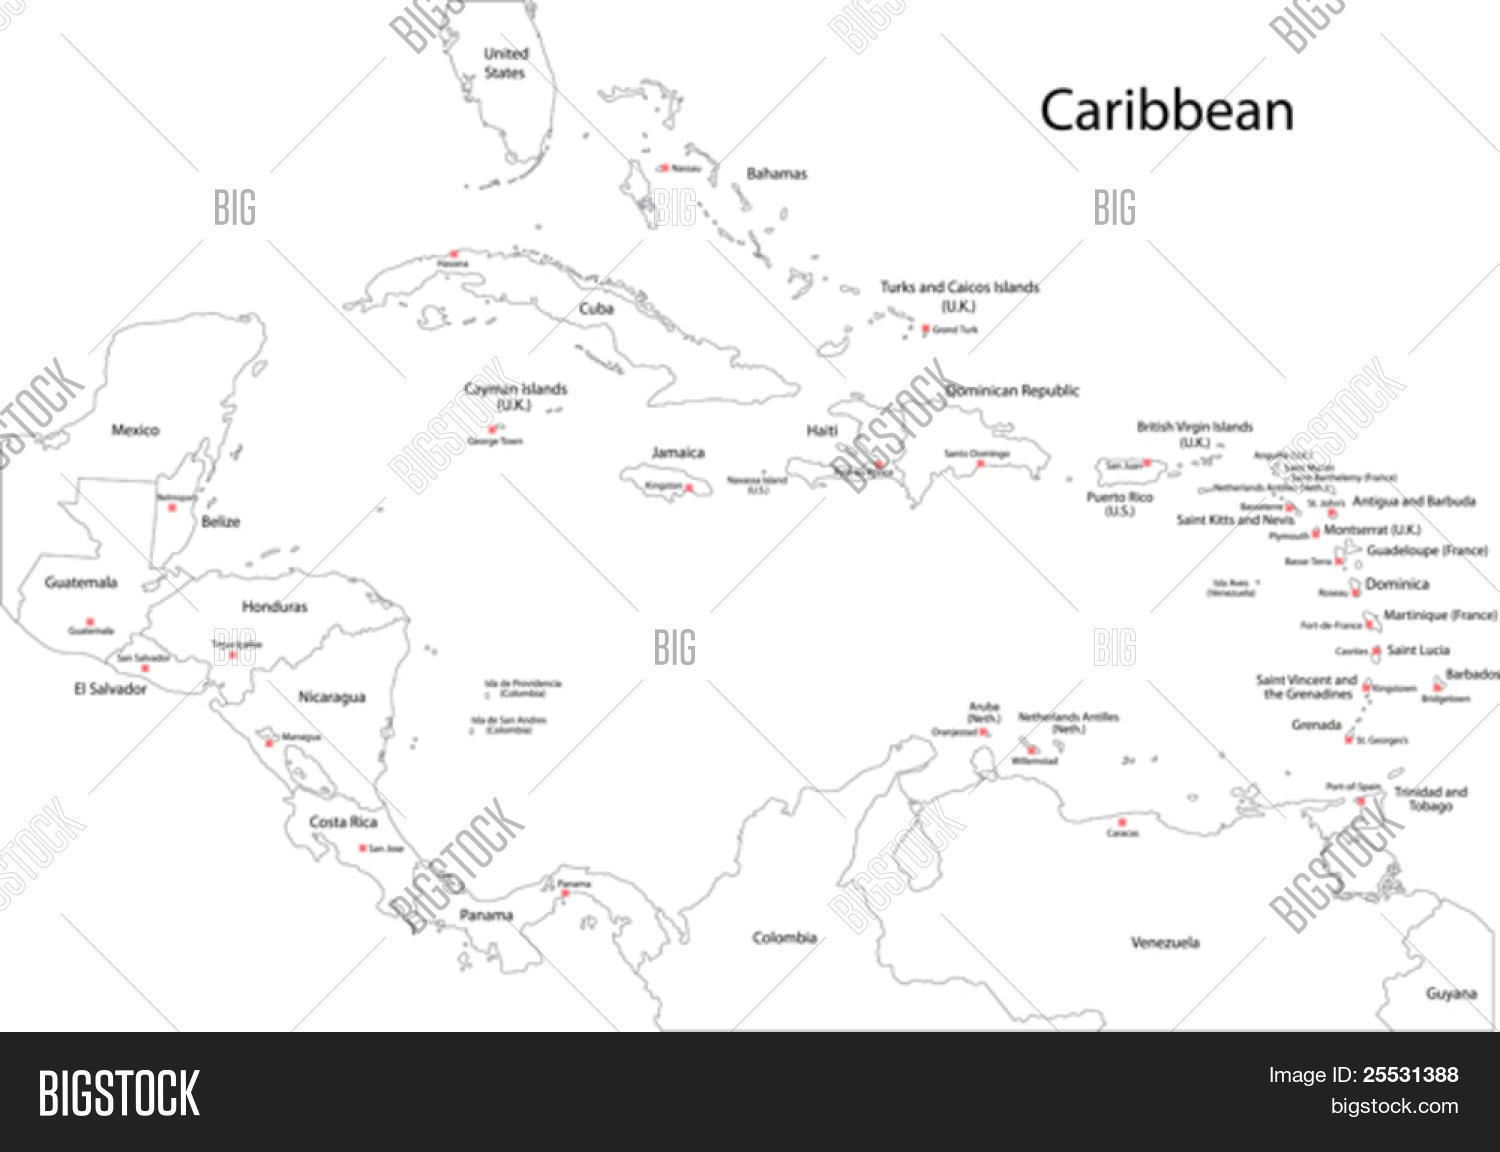 Outline Caribbean Map Vector & Photo (Free Trial) | Bigstock on puerto rico map outline, abaco map outline, armenia map outline, bhutan map outline, far east map outline, aruba map outline, greenland map outline, transatlantic map outline, mayan map outline, southern us map outline, south pacific islands map outline, pacific coast map outline, caribbean islands, europe map outline, asia map outline, anguilla map outline, saint lucia map outline, senegal map outline, montserrat map outline, appalachian mountains map outline,